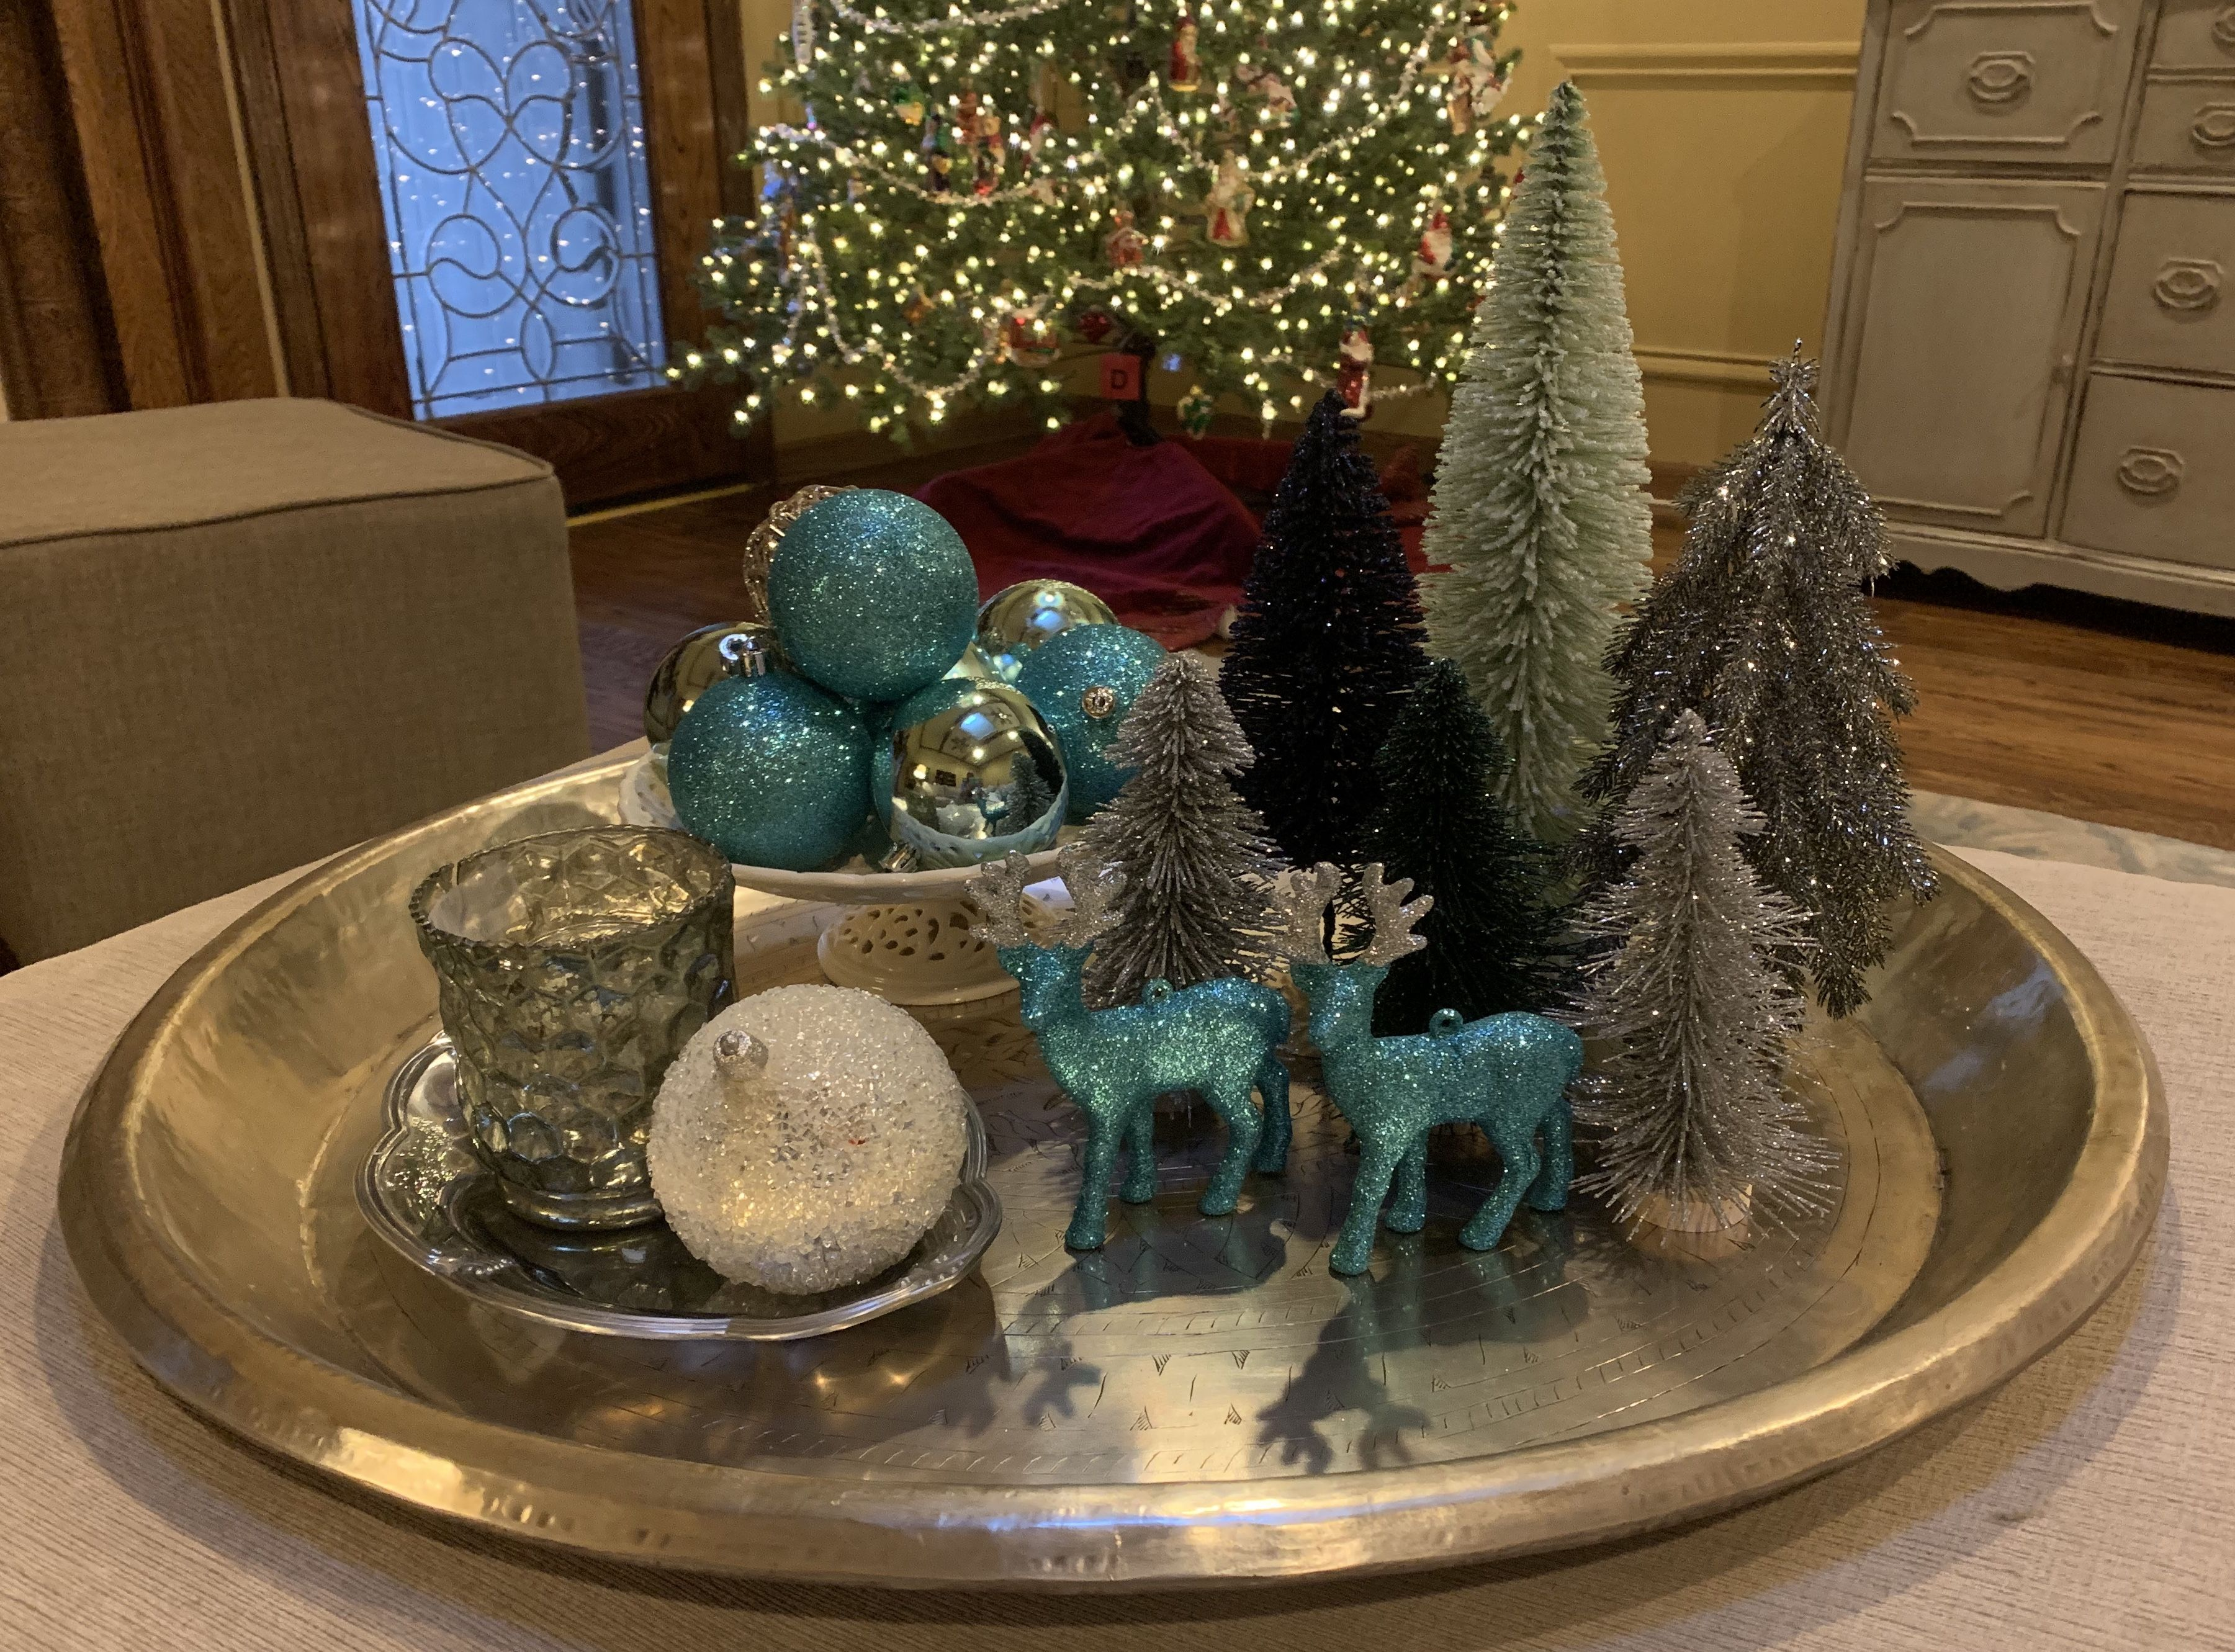 Coffee Table Or Dining Table Bottle Brush Trees Tray Decor Decorating Coffee Tables Table Decorations